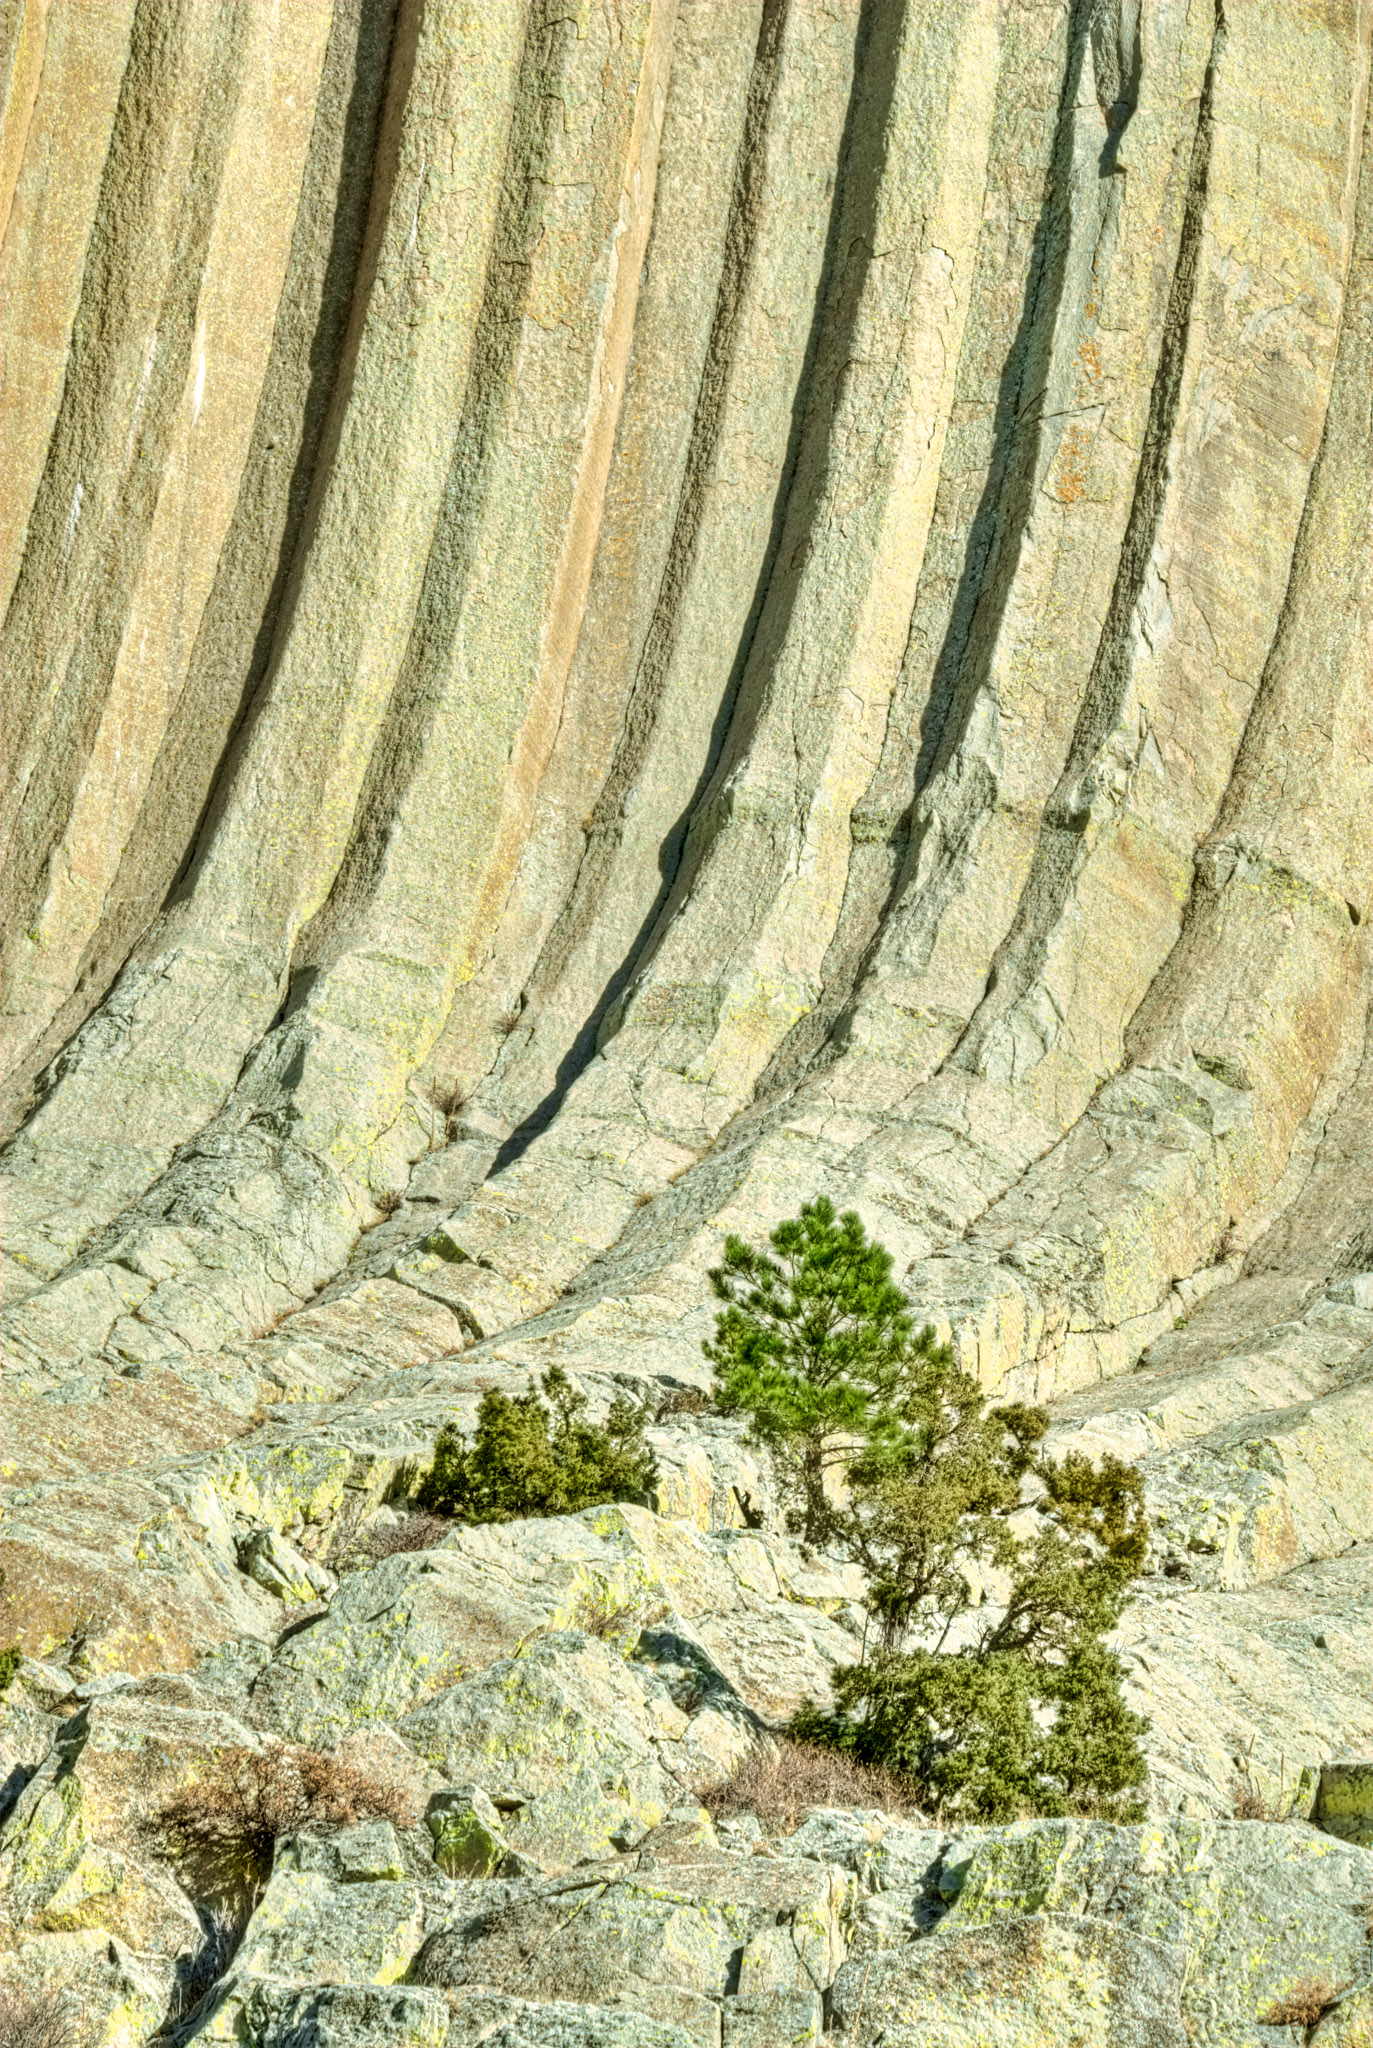 A close-up view of the base of Devils Tower, showing the columnar jointing.